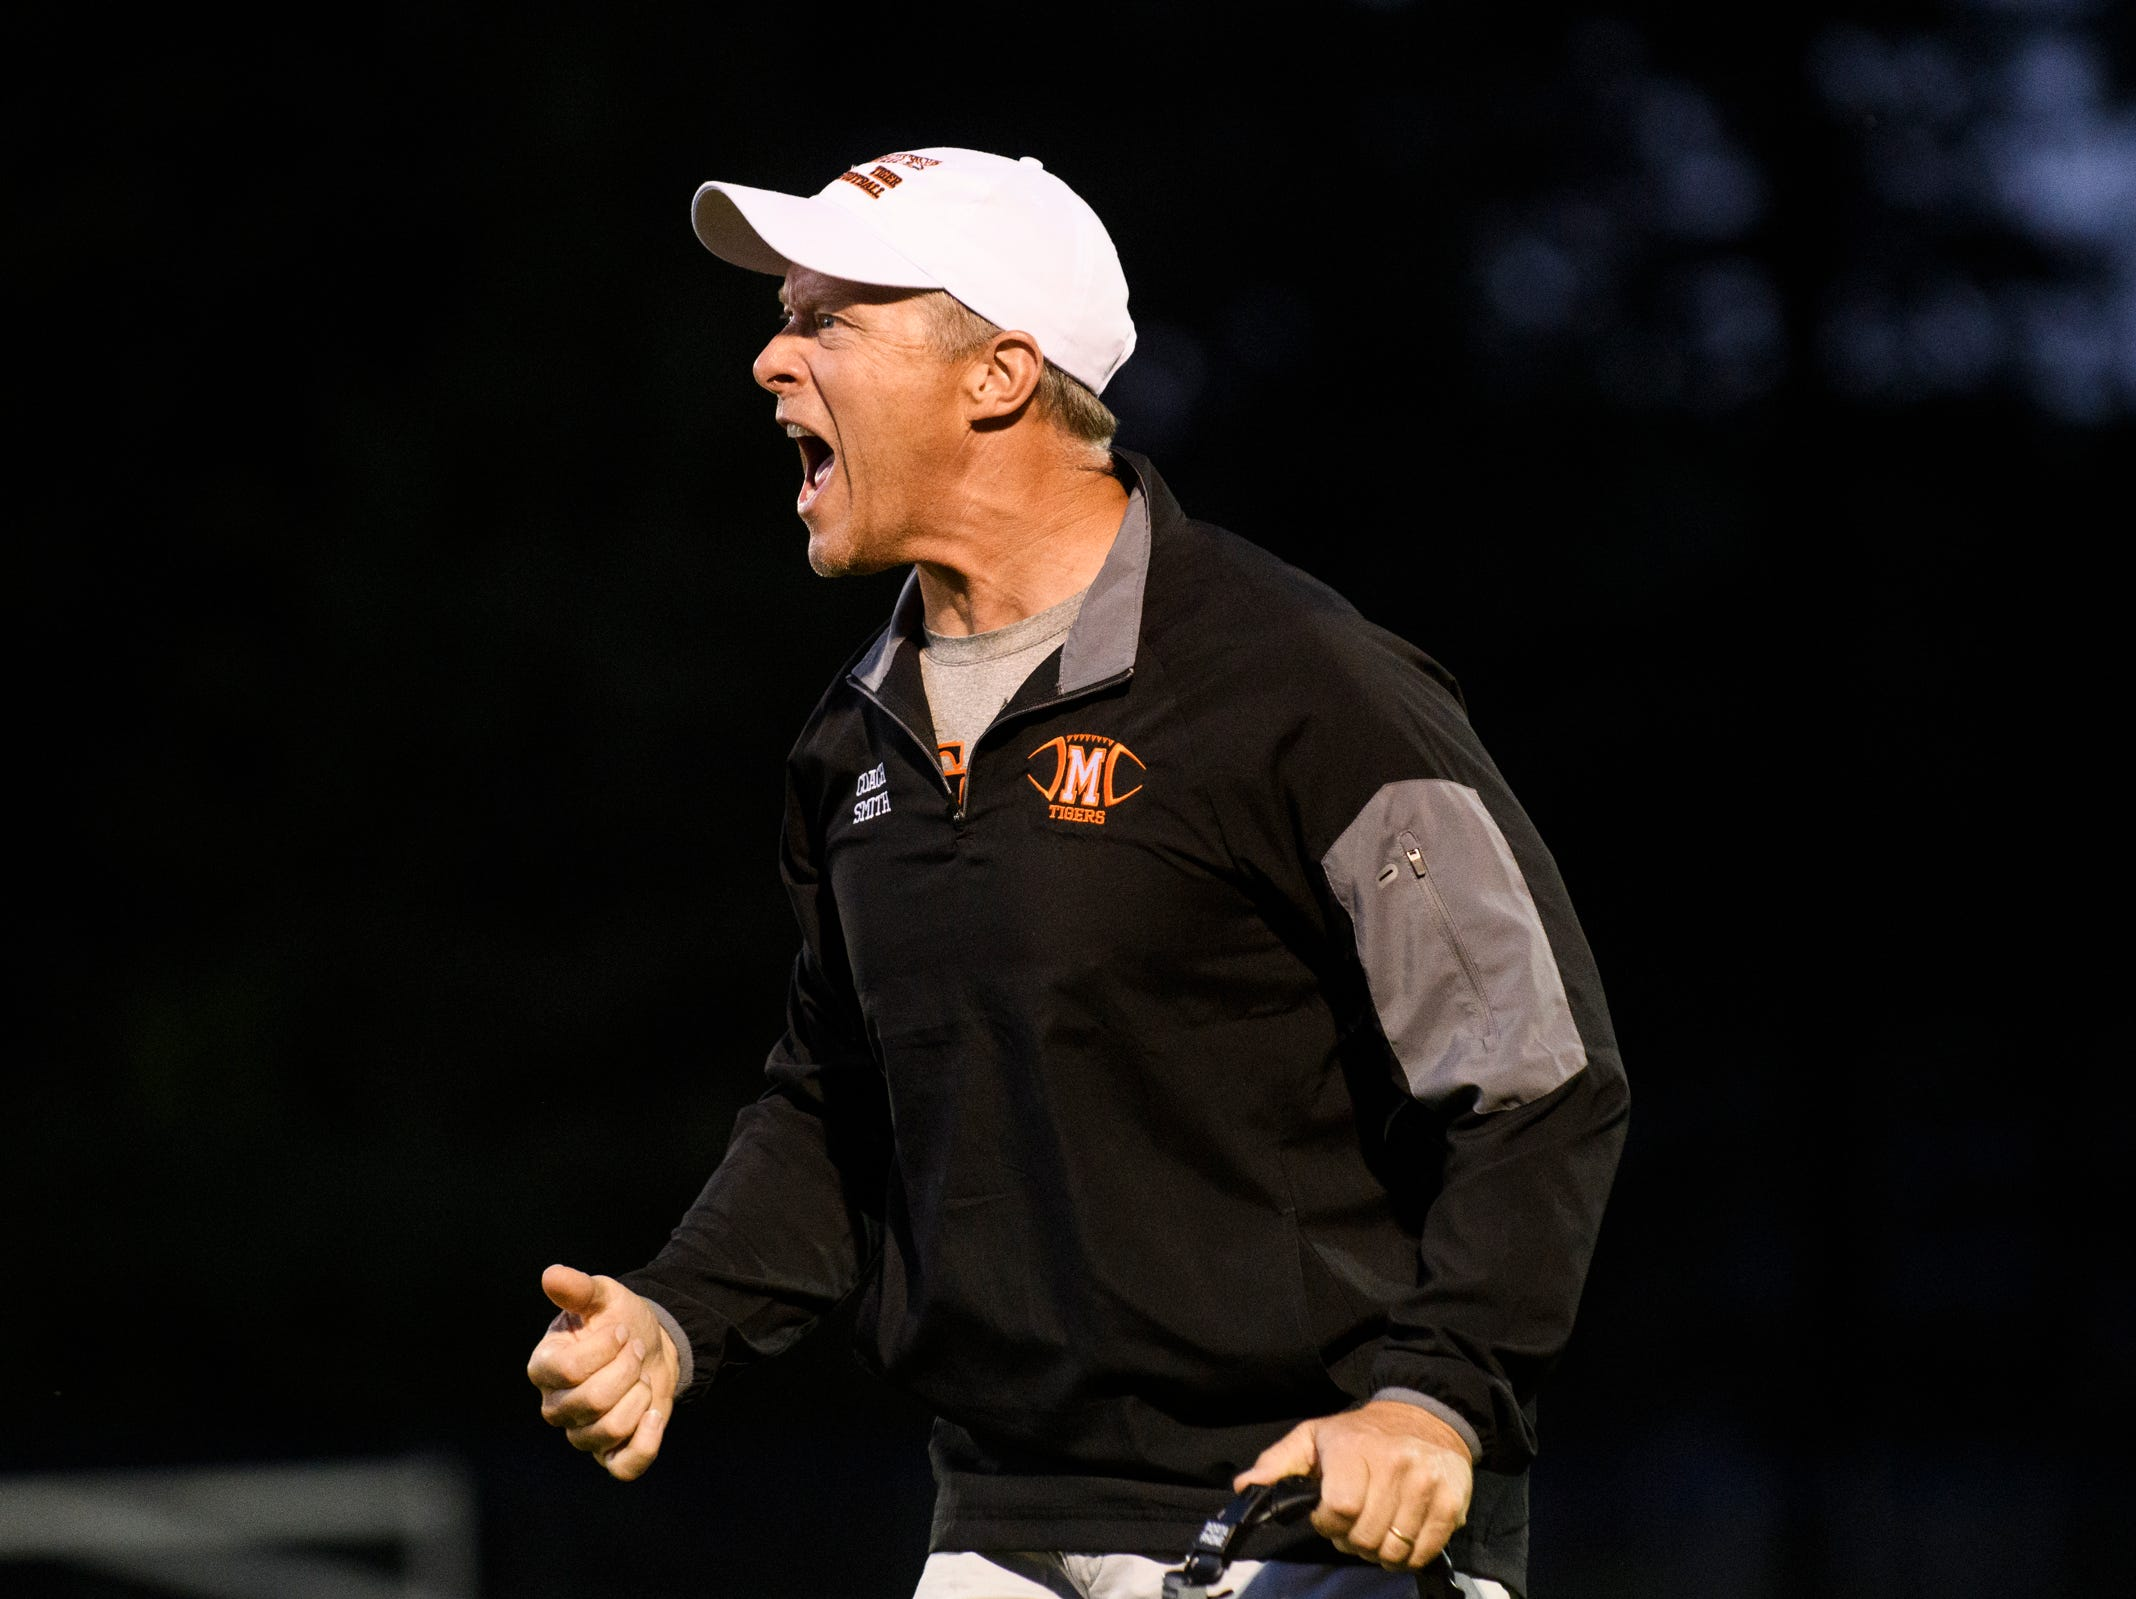 Middlebury head coach Dennis Smith yells to the players on the field during the boys high school football game between Middlebury and Colchester at Colchester high school on Friday night August 31, 2018 in Colchester.